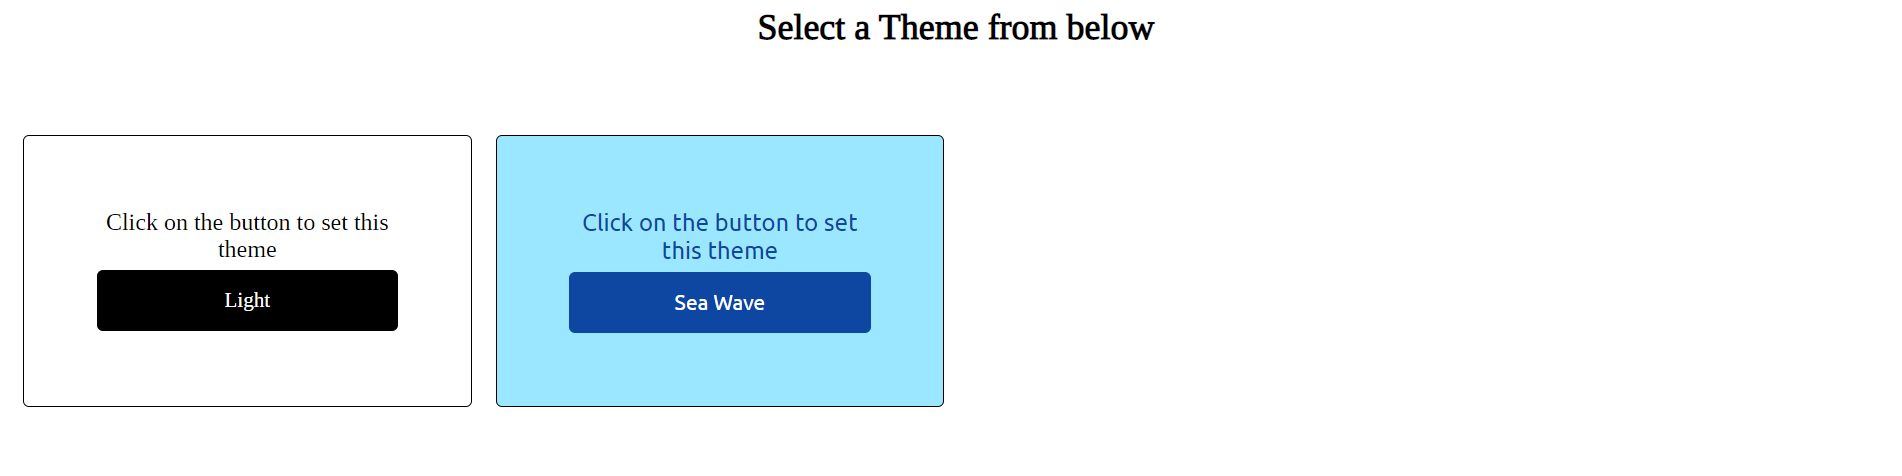 A heading instructs the user to select a theme and two card components are beneath the heading, side-by-side, showing previews of the light theme and the sea wave theme.